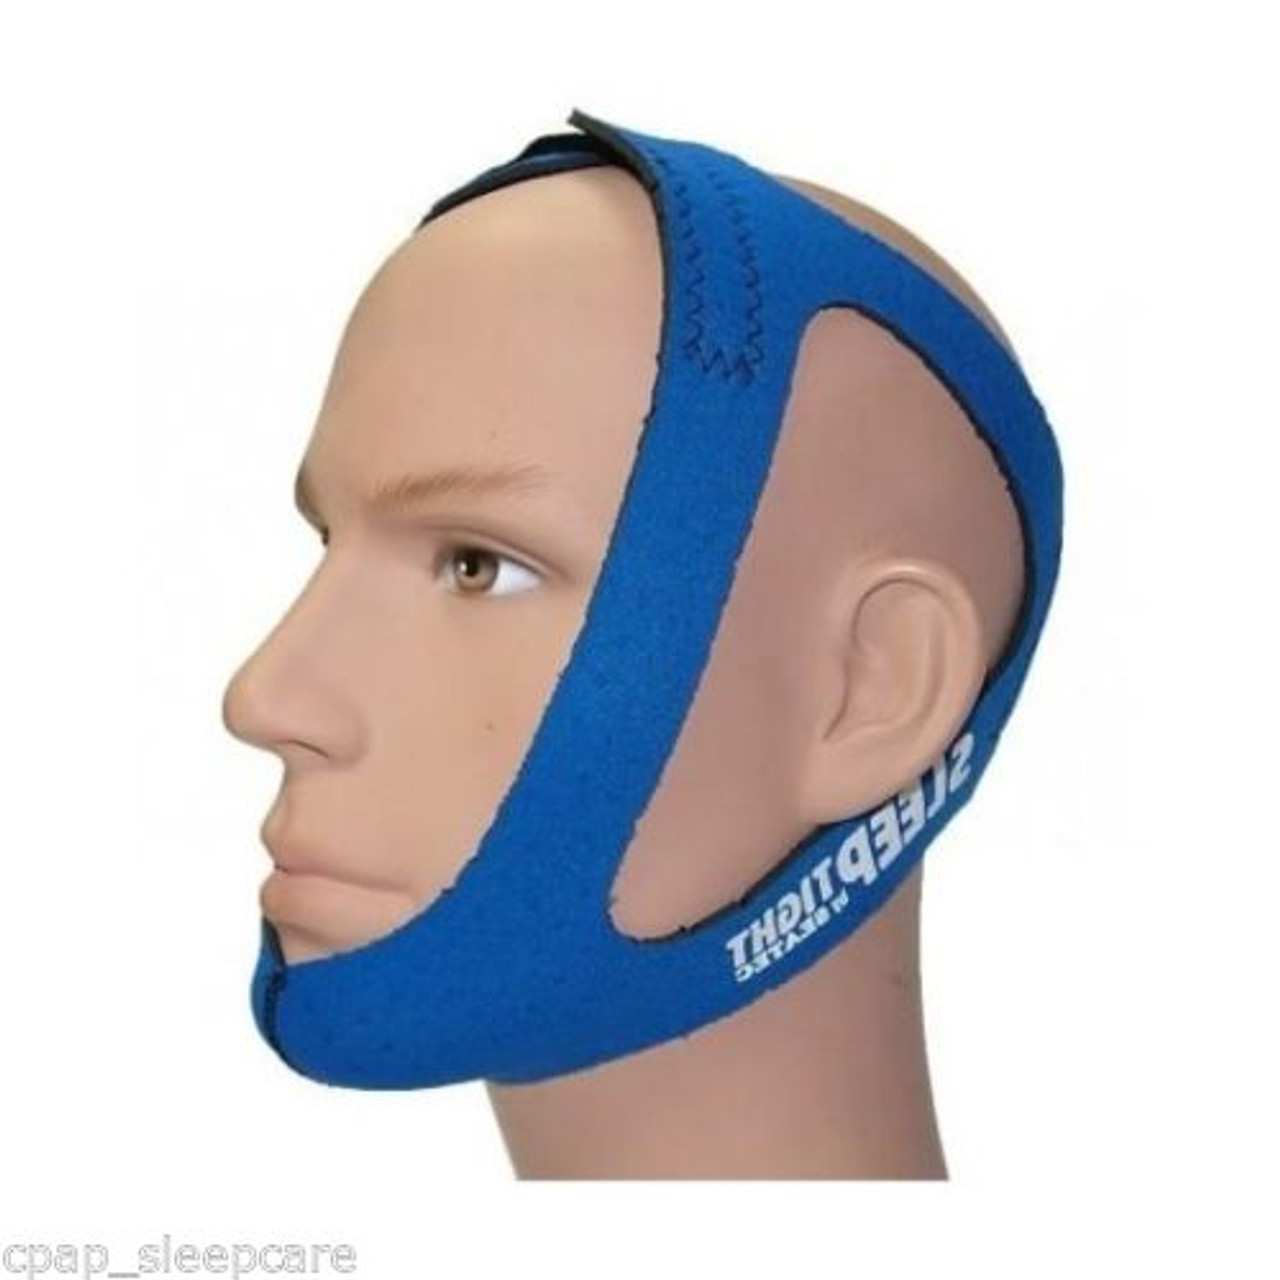 Seatec SleepTight Chin strap